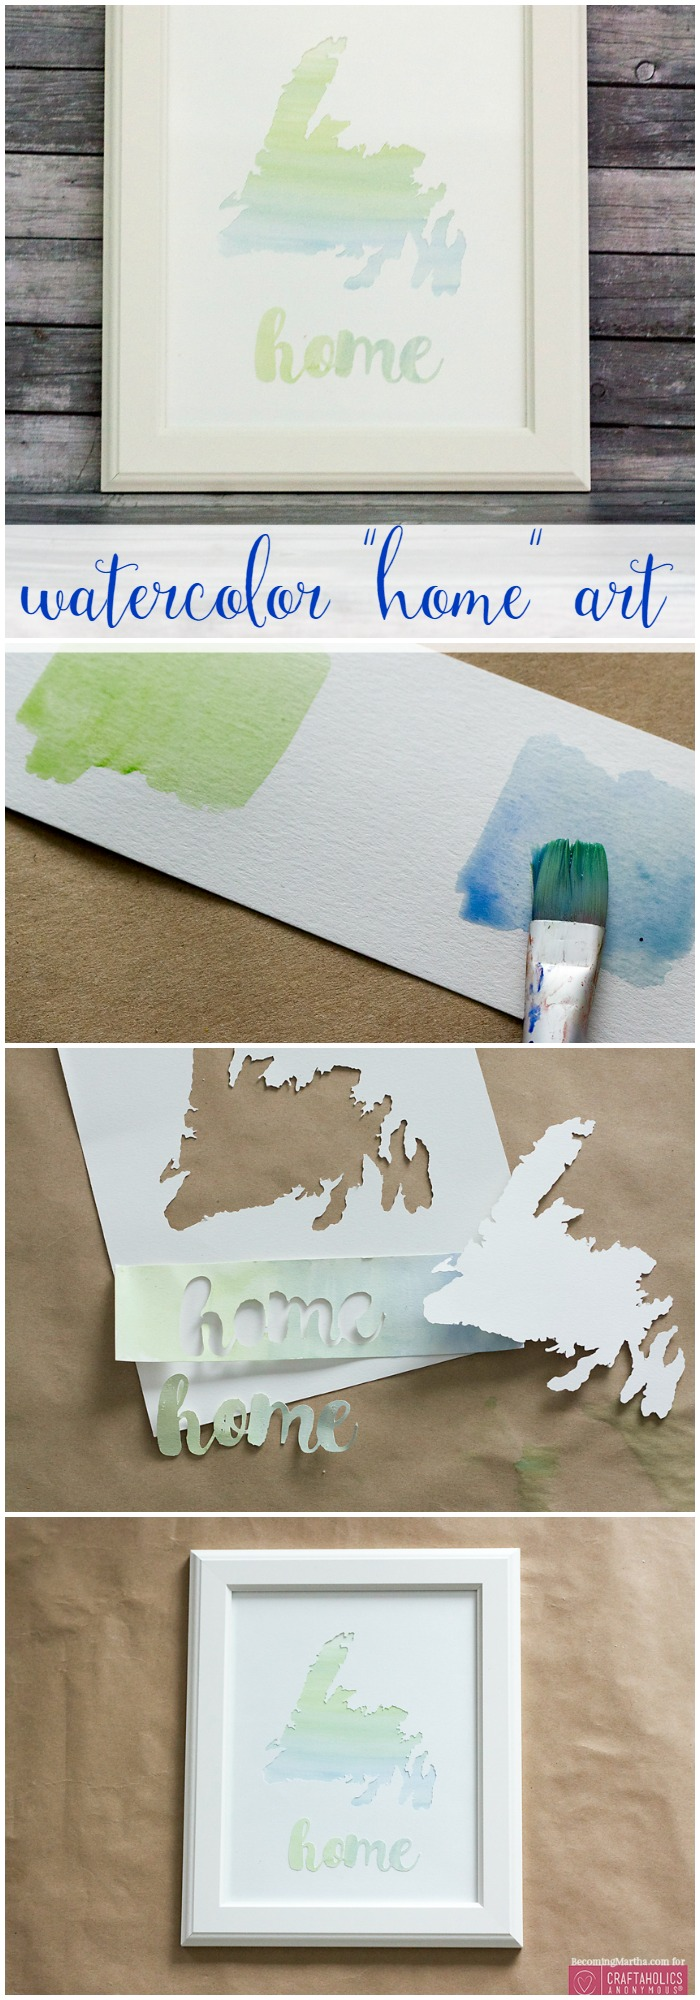 DIY Watercolor Home Love Art from craftaholicsanonymous.net